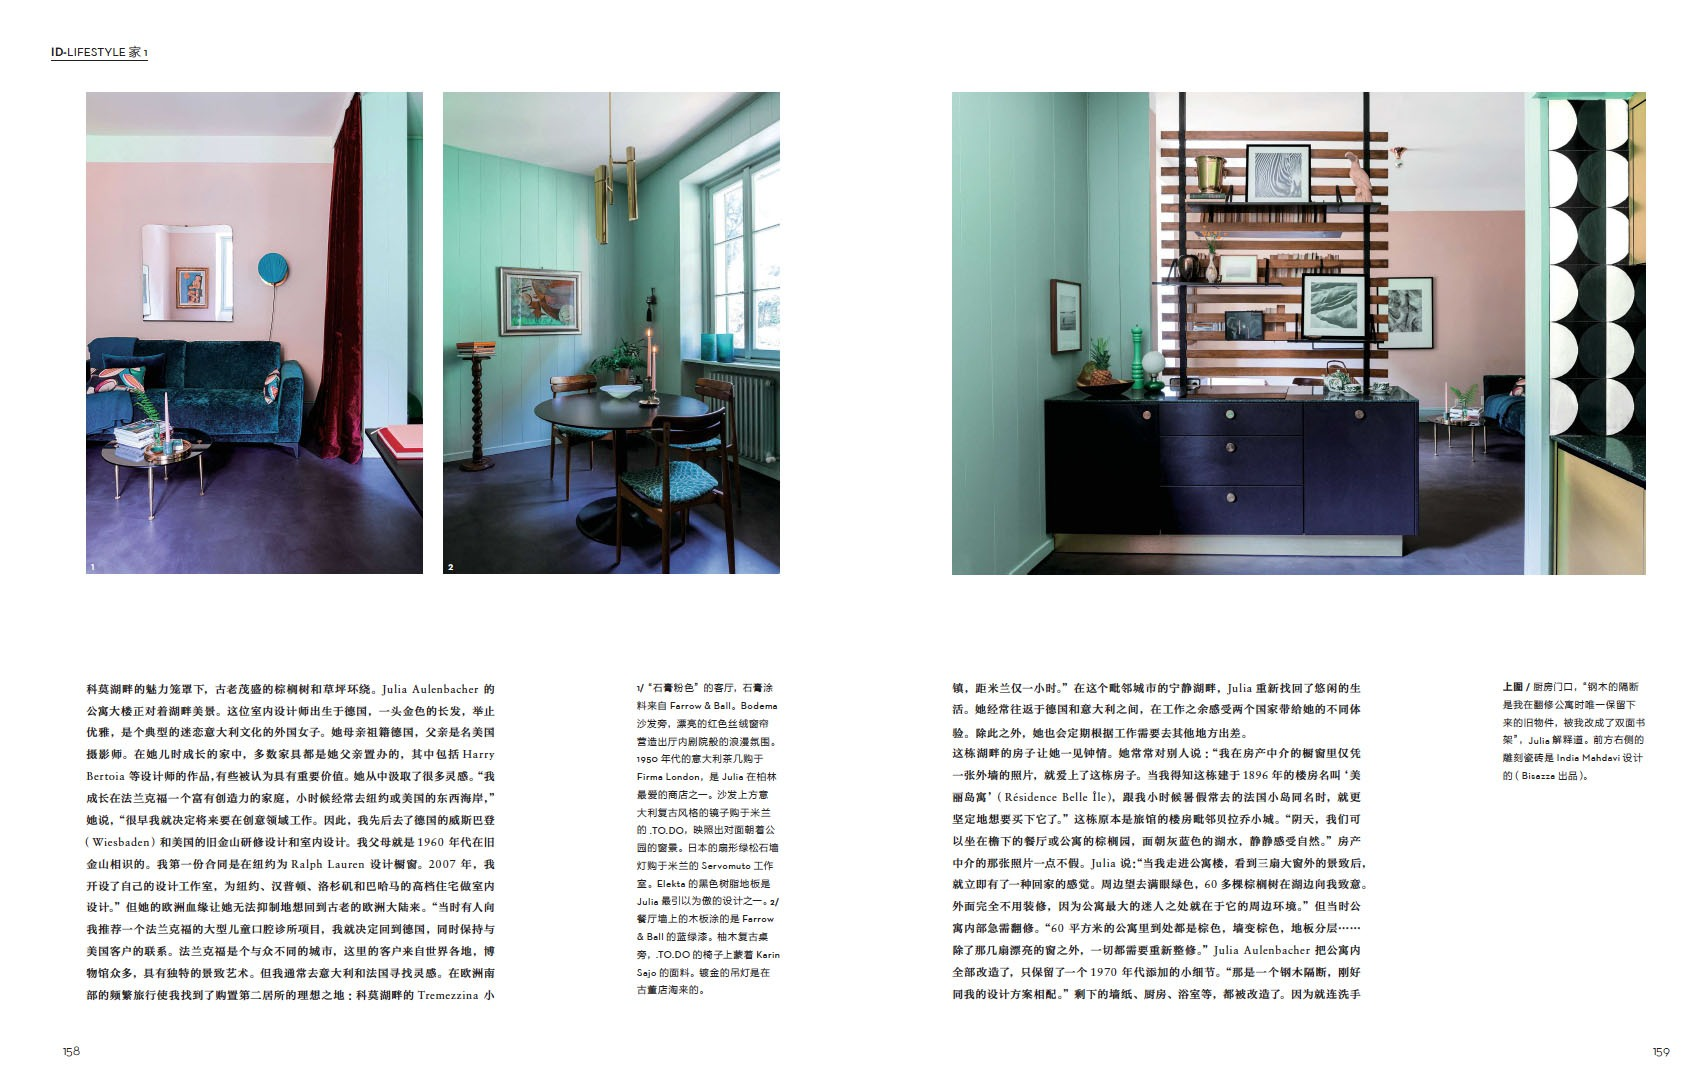 Julia Aulenbacher - Interiors +++ IDEAT China Double 2